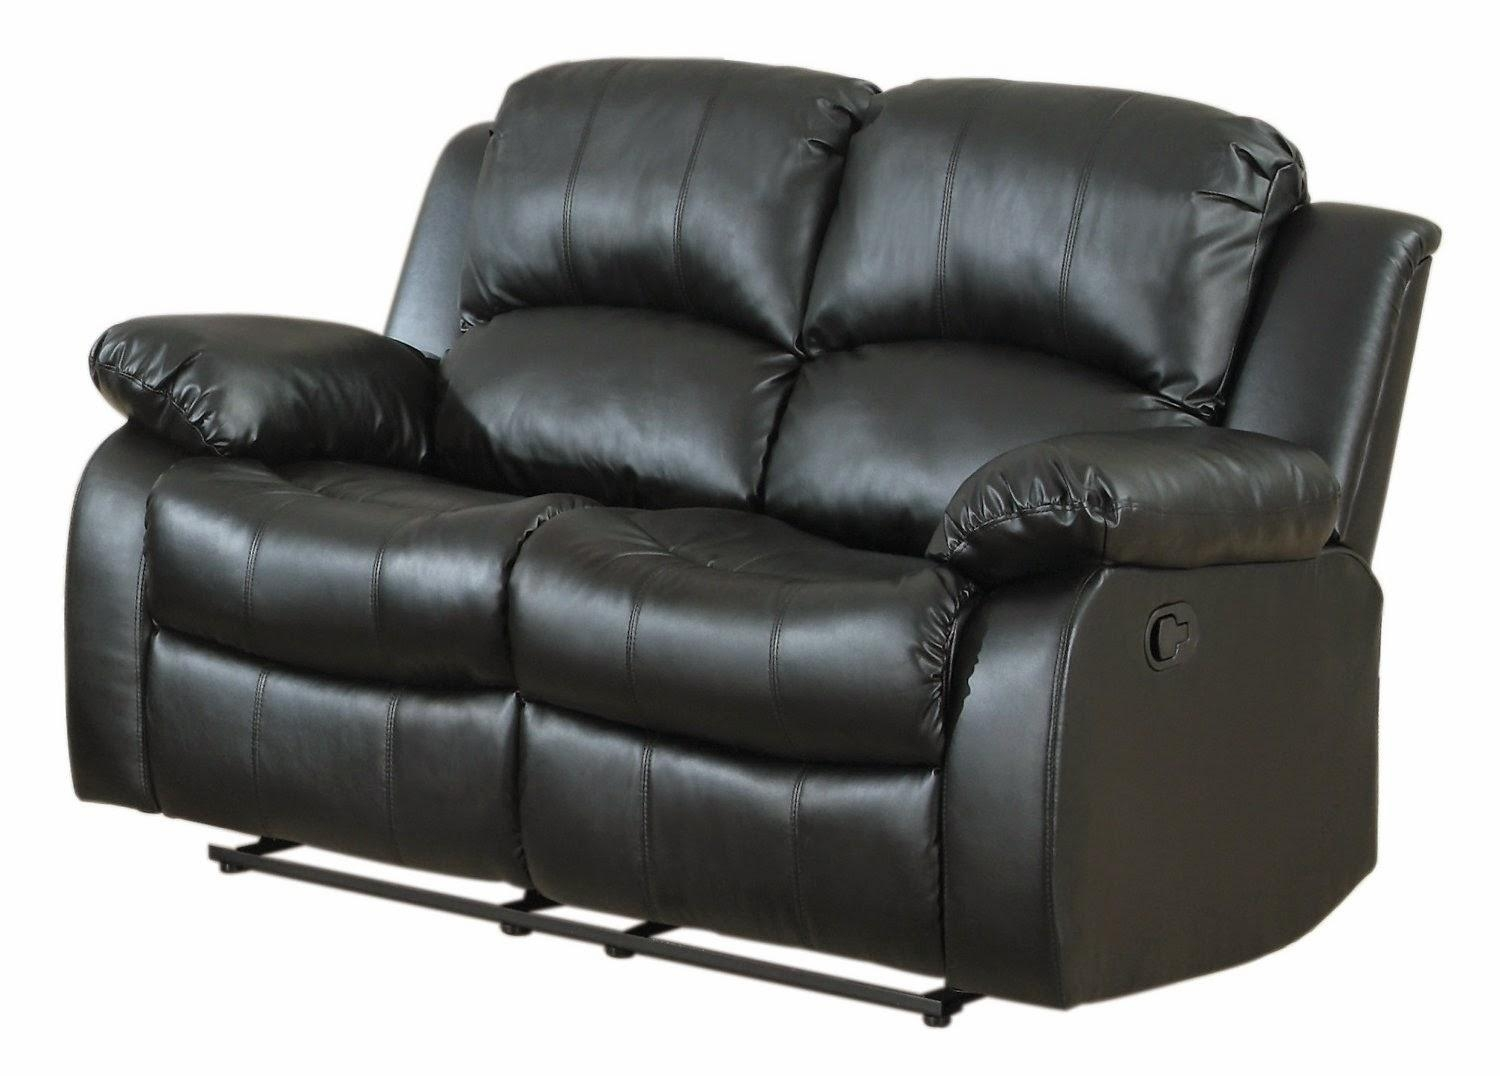 Sofas Center : Costco Leather Reclining Sofa Sofas And With Regard To Berkline Sofa Recliner (Image 15 of 20)